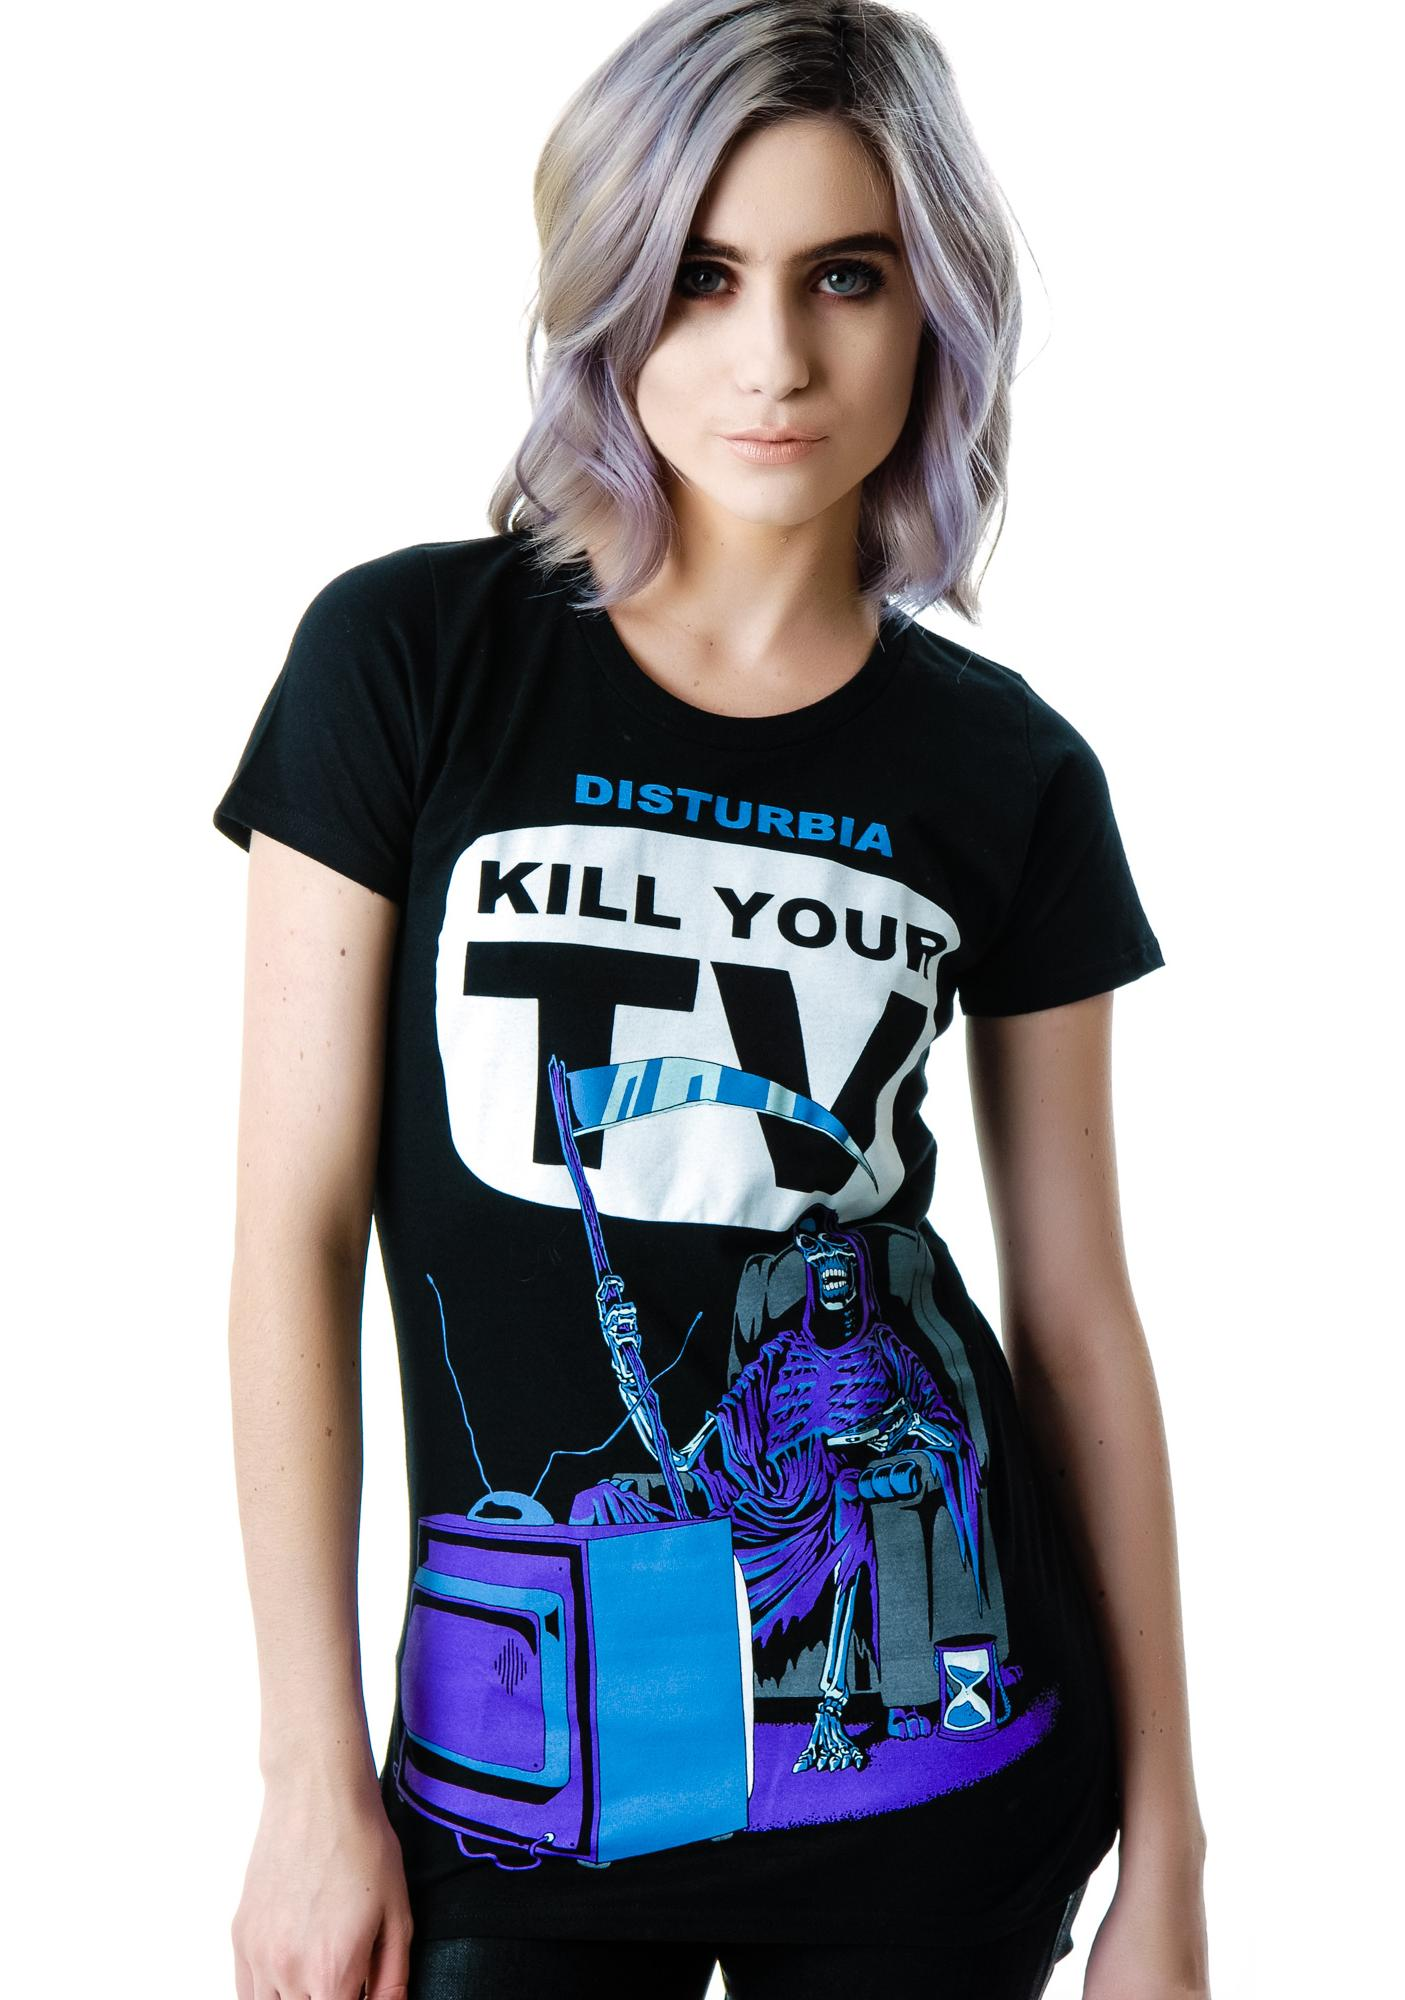 Disturbia Kill Your TV Tee